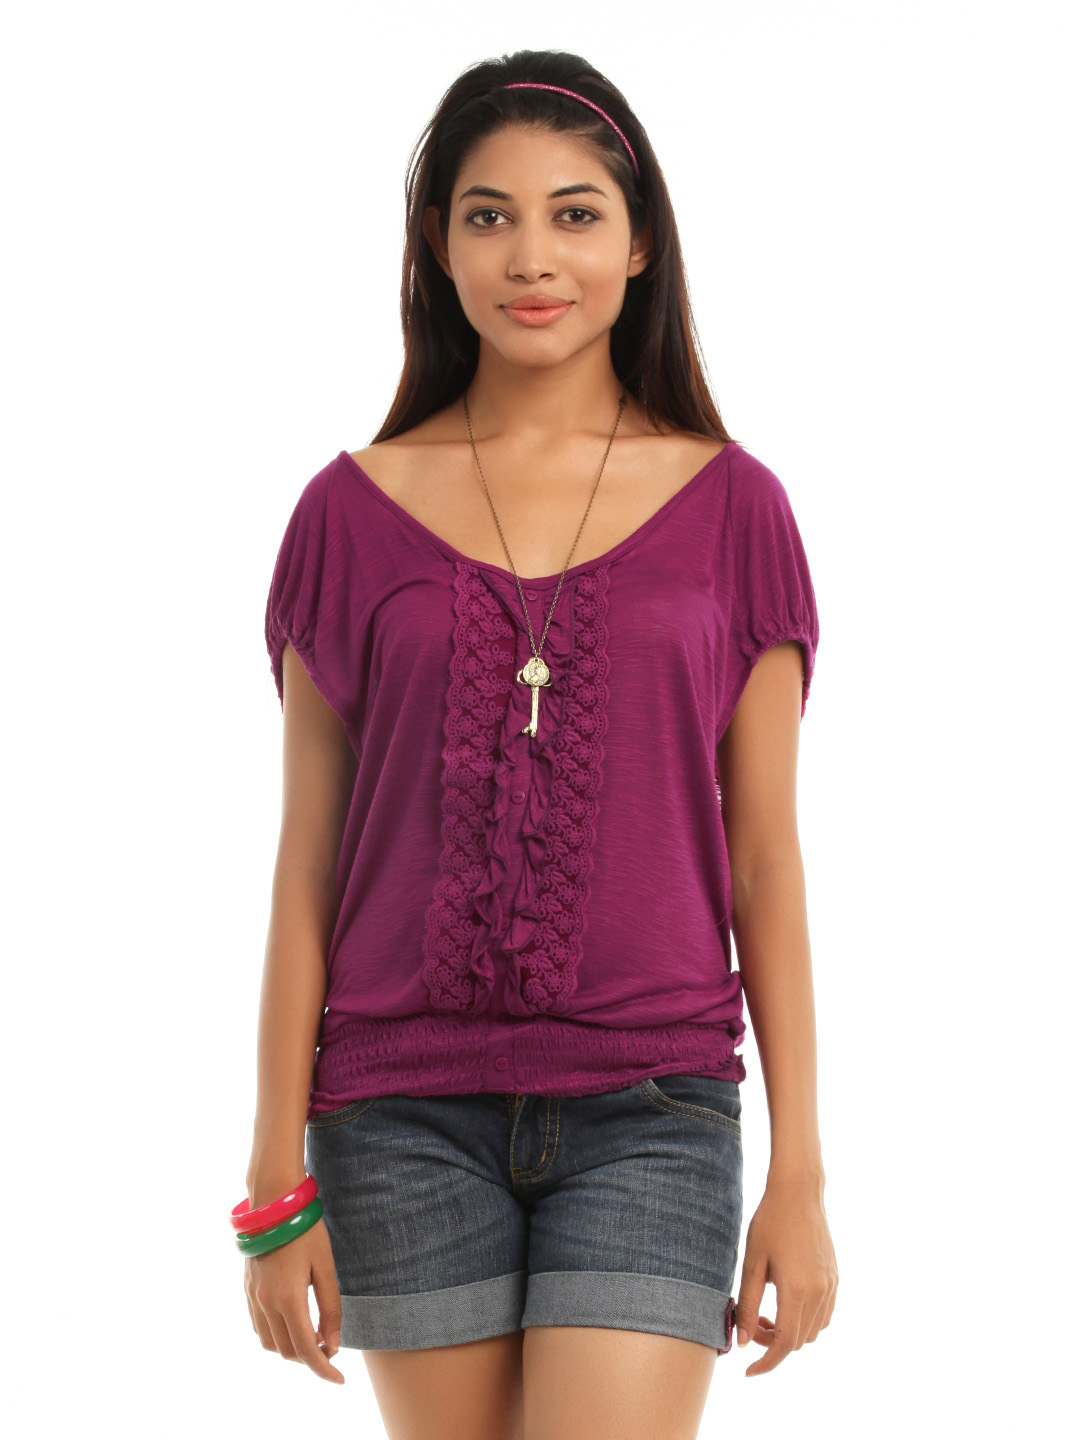 Vero Moda Women Magenta Top